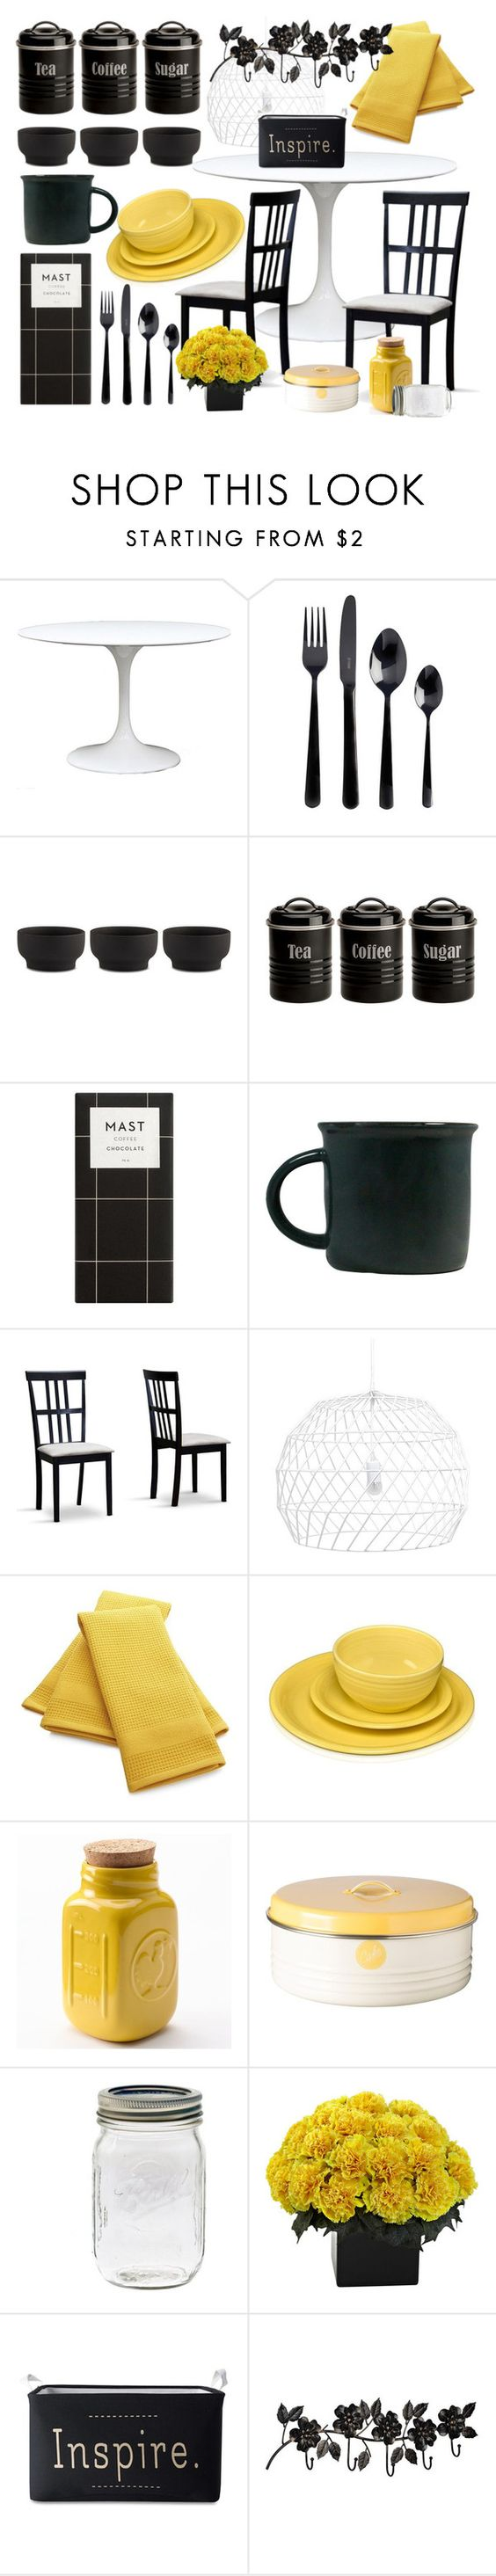 """""""In the Kitchen"""" by emlibertelli ❤ liked on Polyvore featuring interior, interiors, interior design, home, home decor, interior decorating, Viners, Stelton, Typhoon and canvas"""